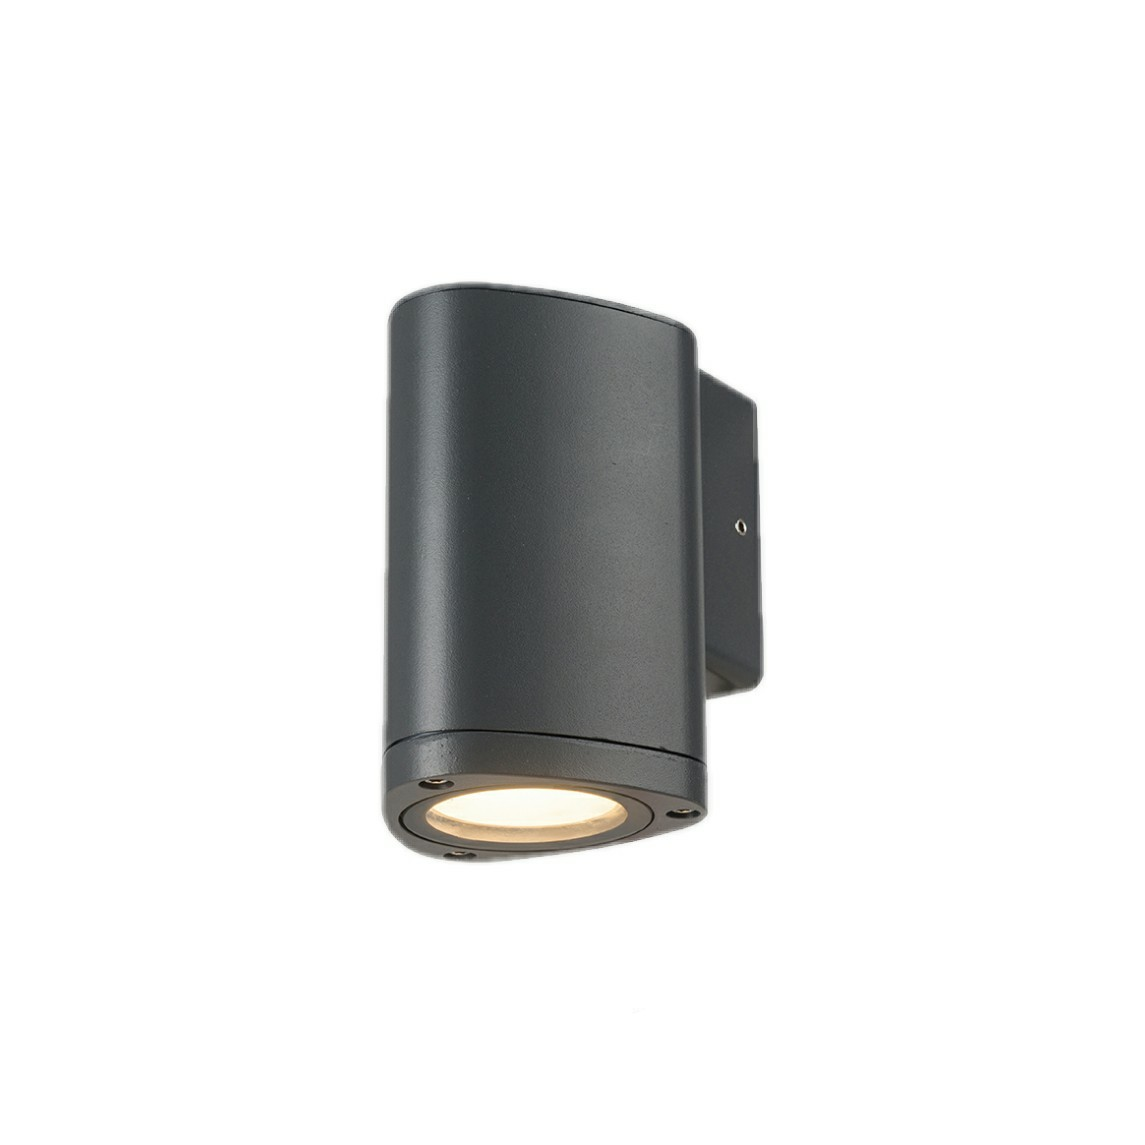 WALL LAMP 3+DX2981BL/WH